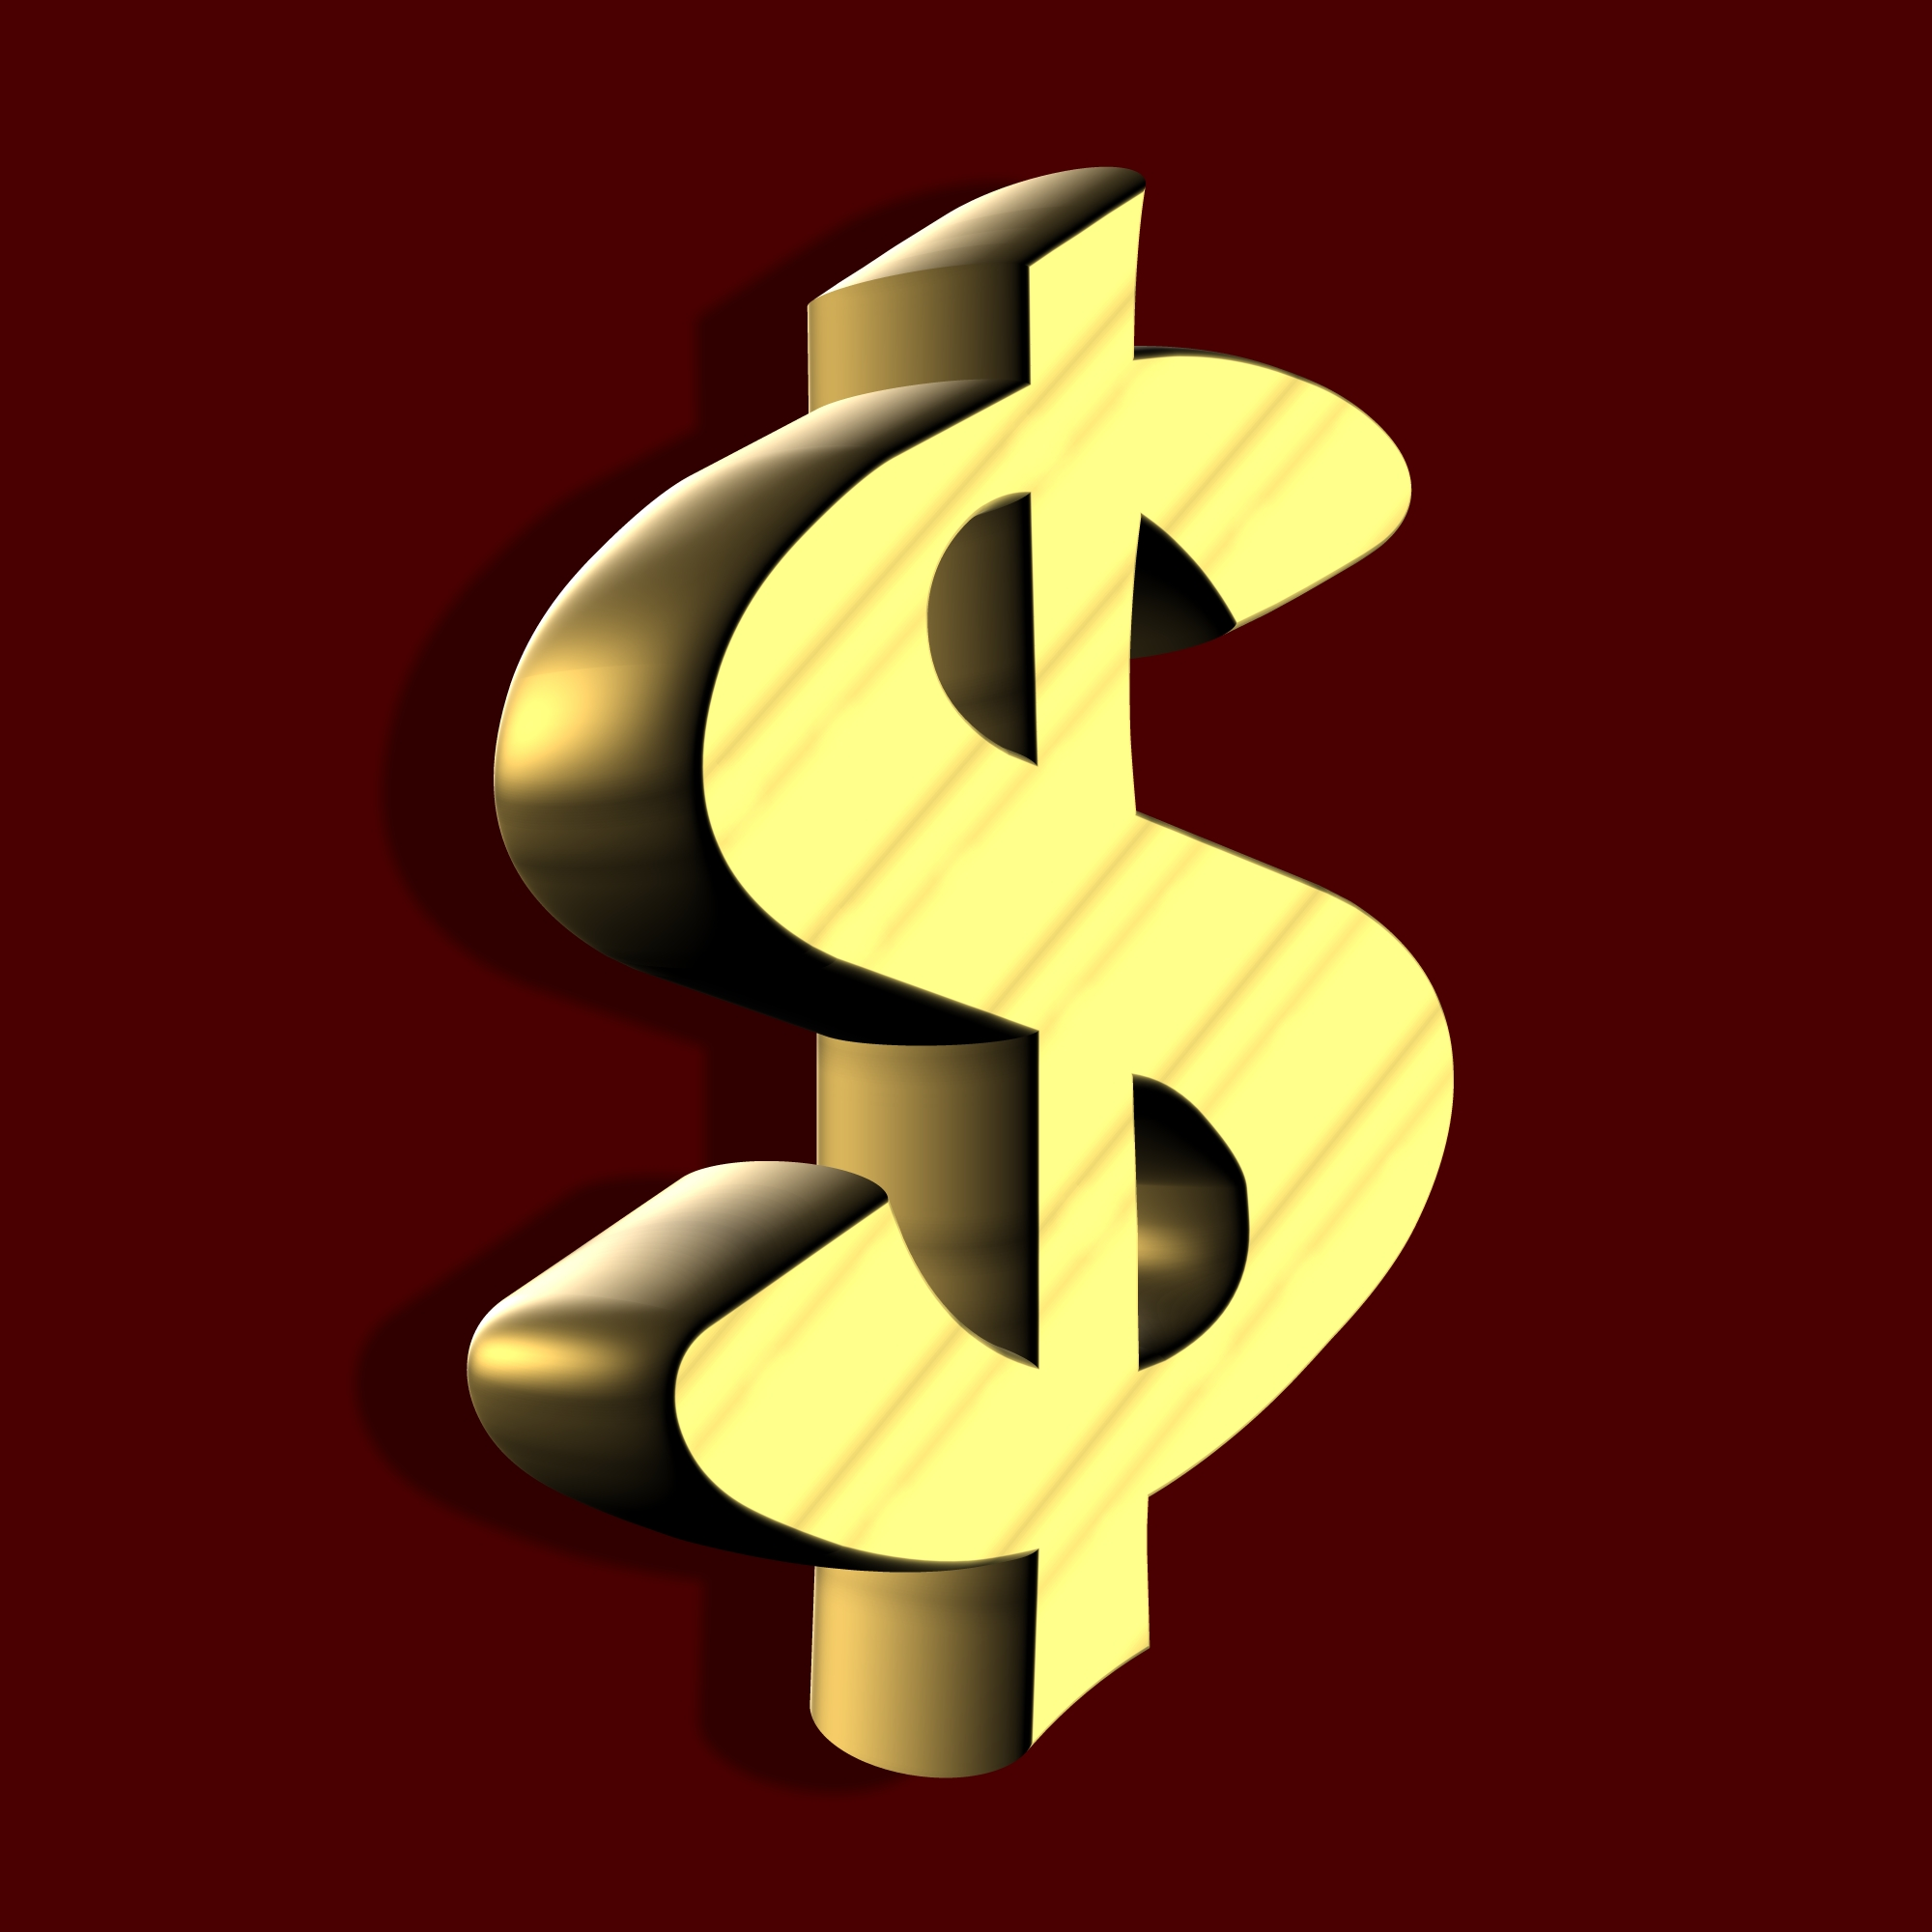 Golden Dollar Sign, Cash, Character, Currency, Dollar, HQ Photo